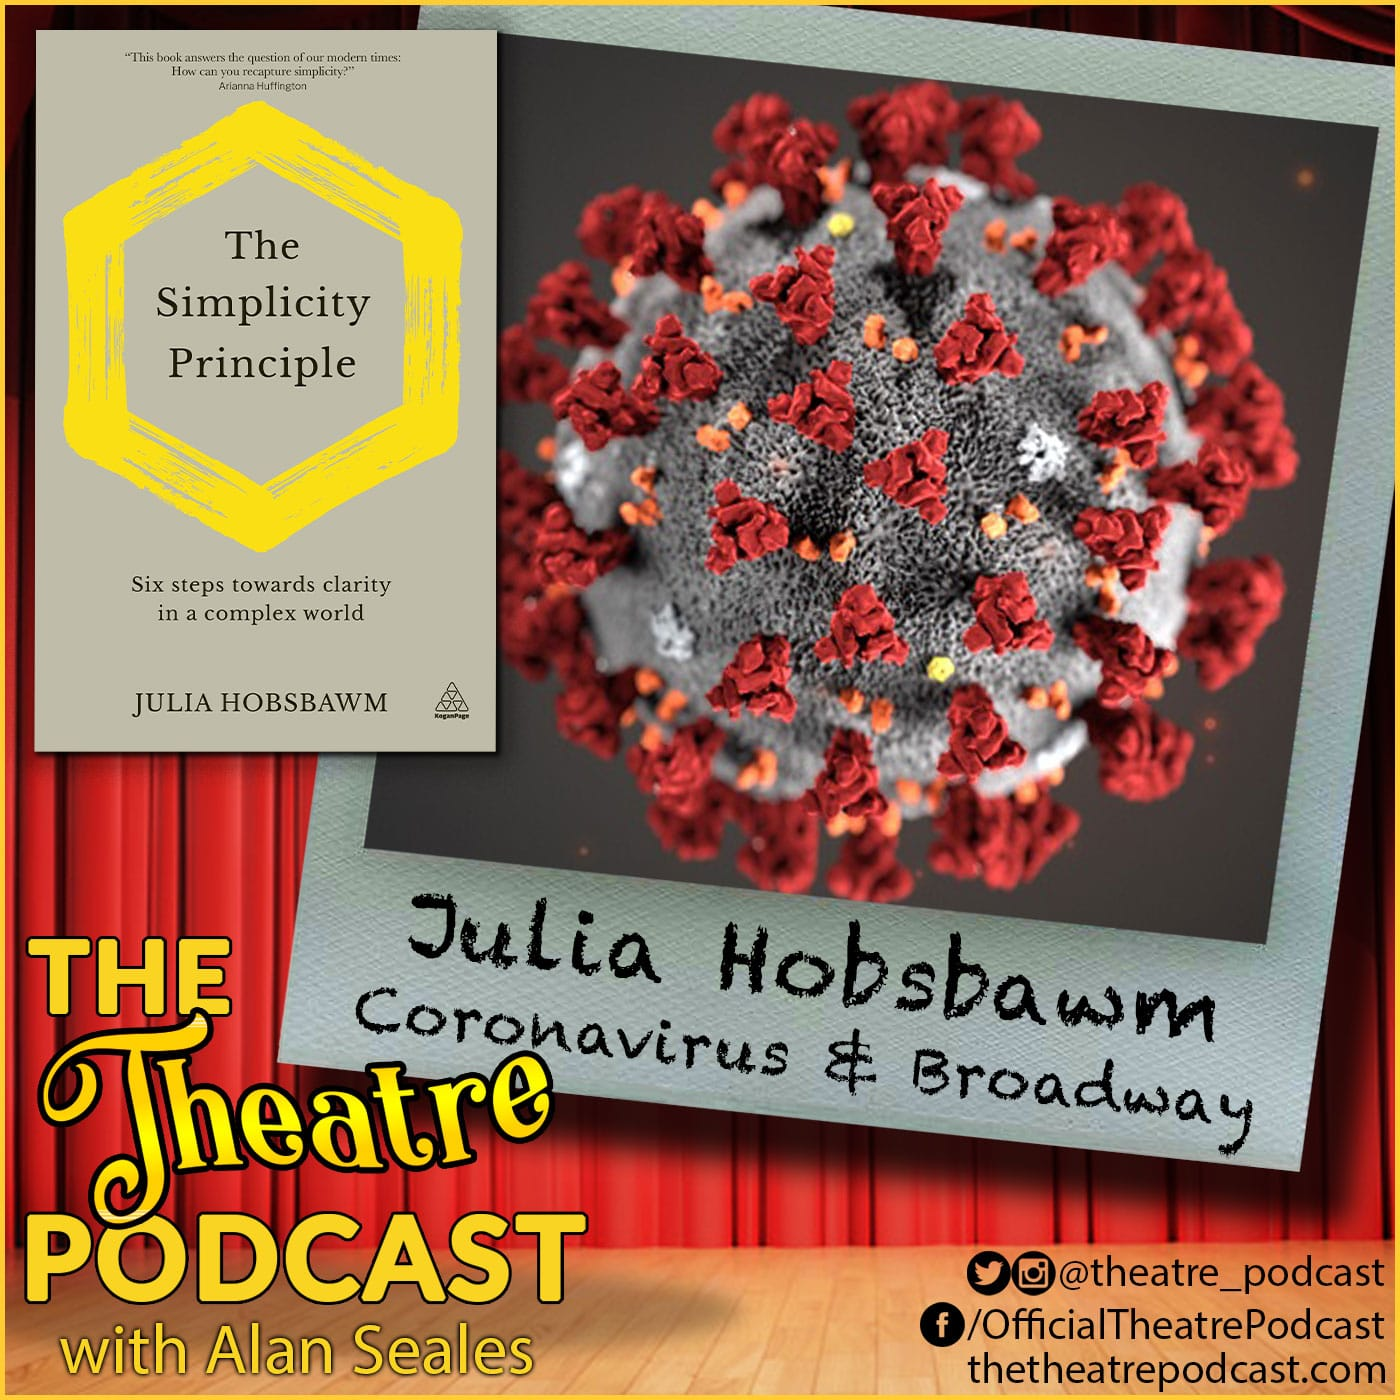 The Theatre Podcast - Coronavirus & Broadway Bonus Episode: Julie Hobsbawm, social health expert, author, and entrepreneur